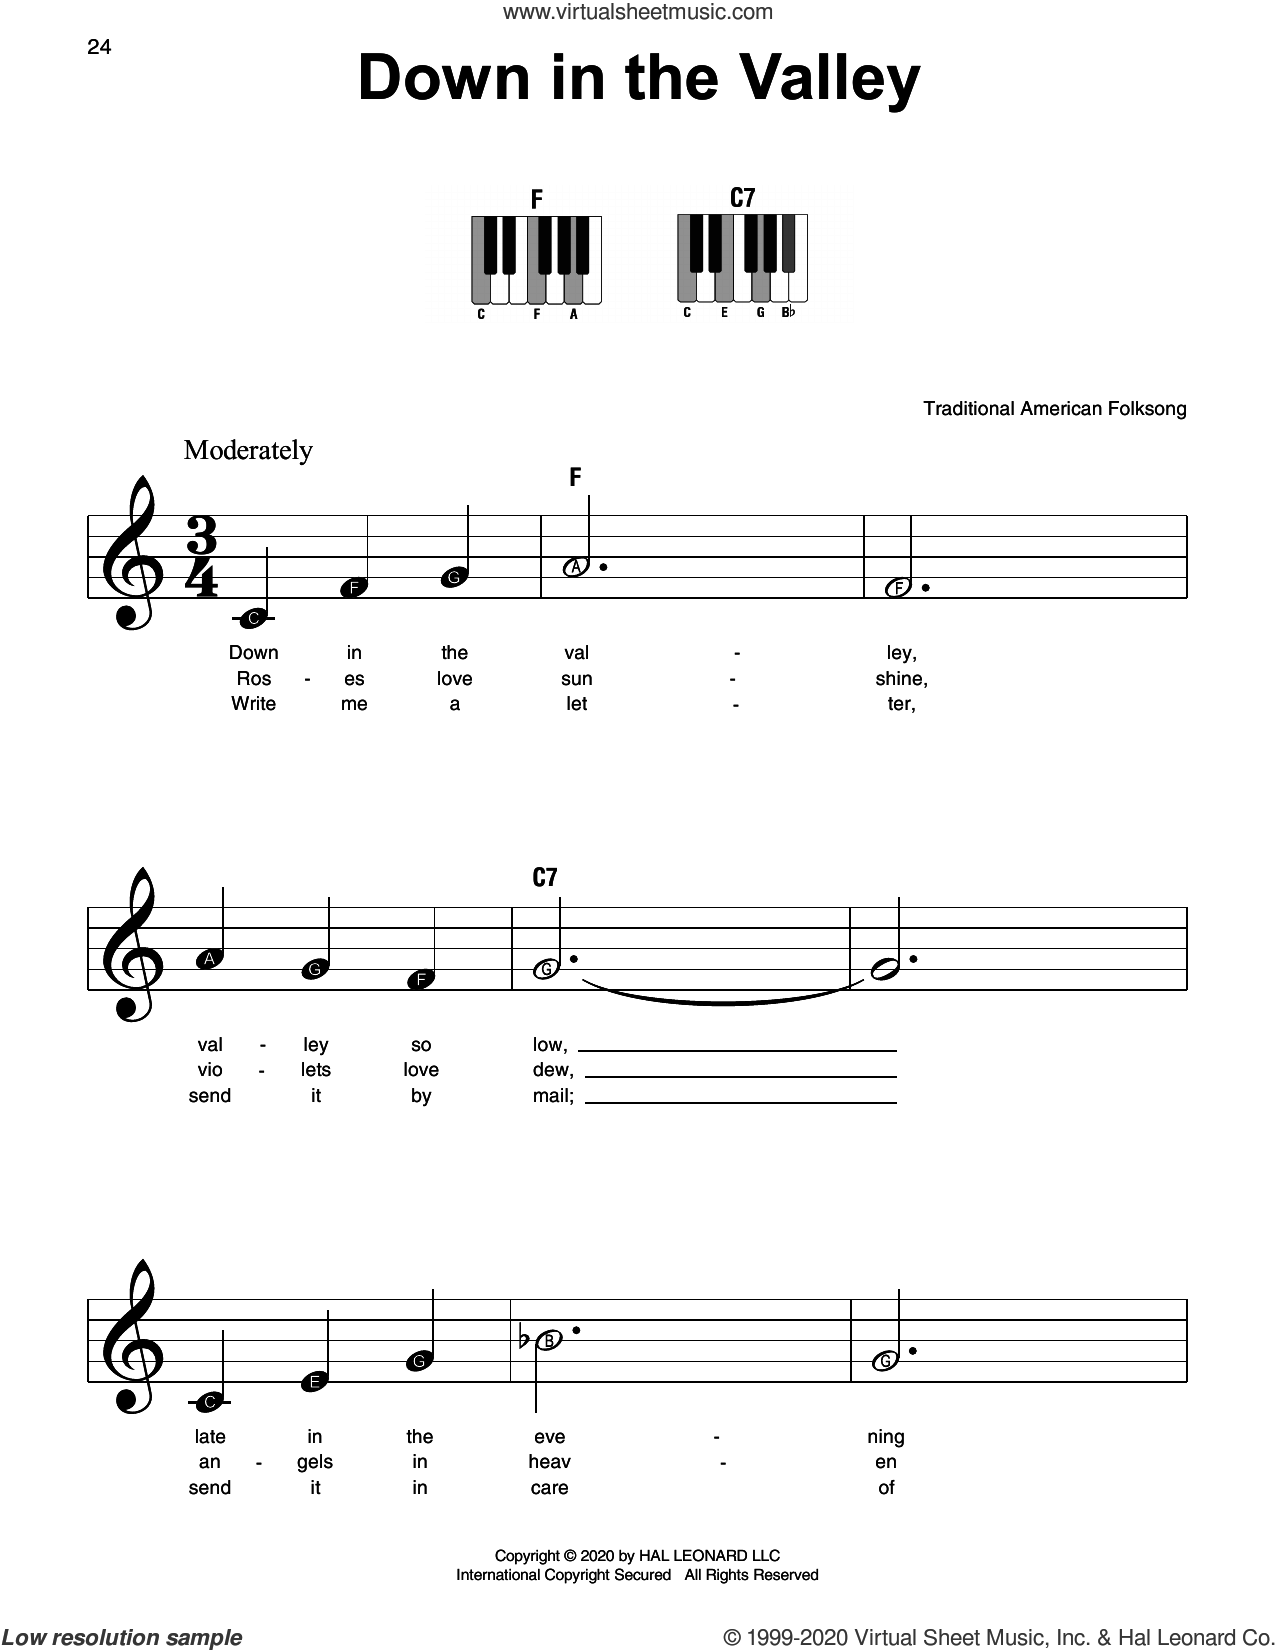 Down In The Valley sheet music for piano solo, beginner skill level